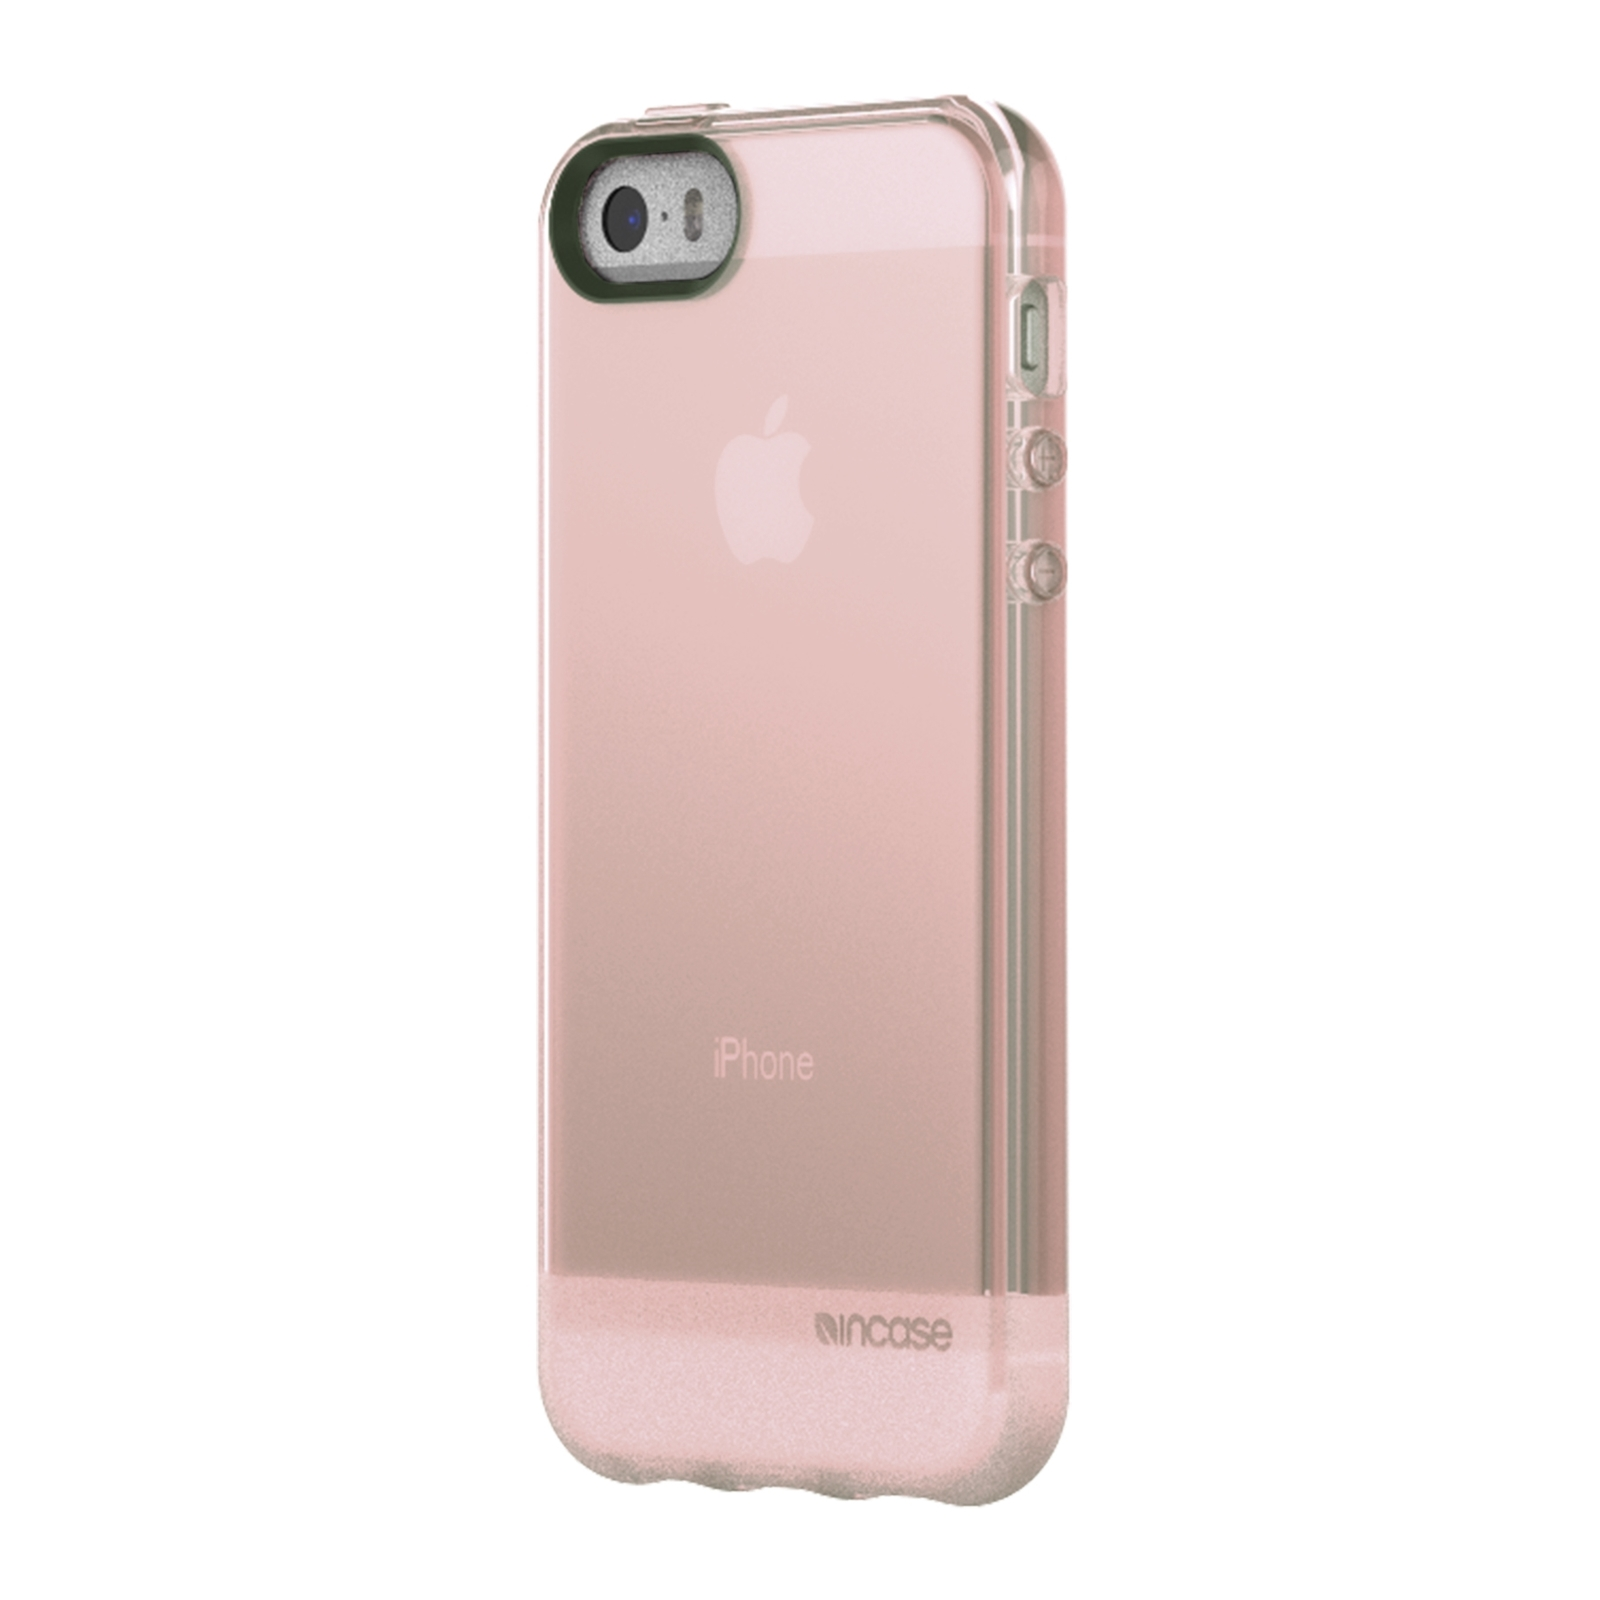 7c8ee2a0656 Incase Protective Cover for iPhone SE - Rose | at Mighty Ape NZ